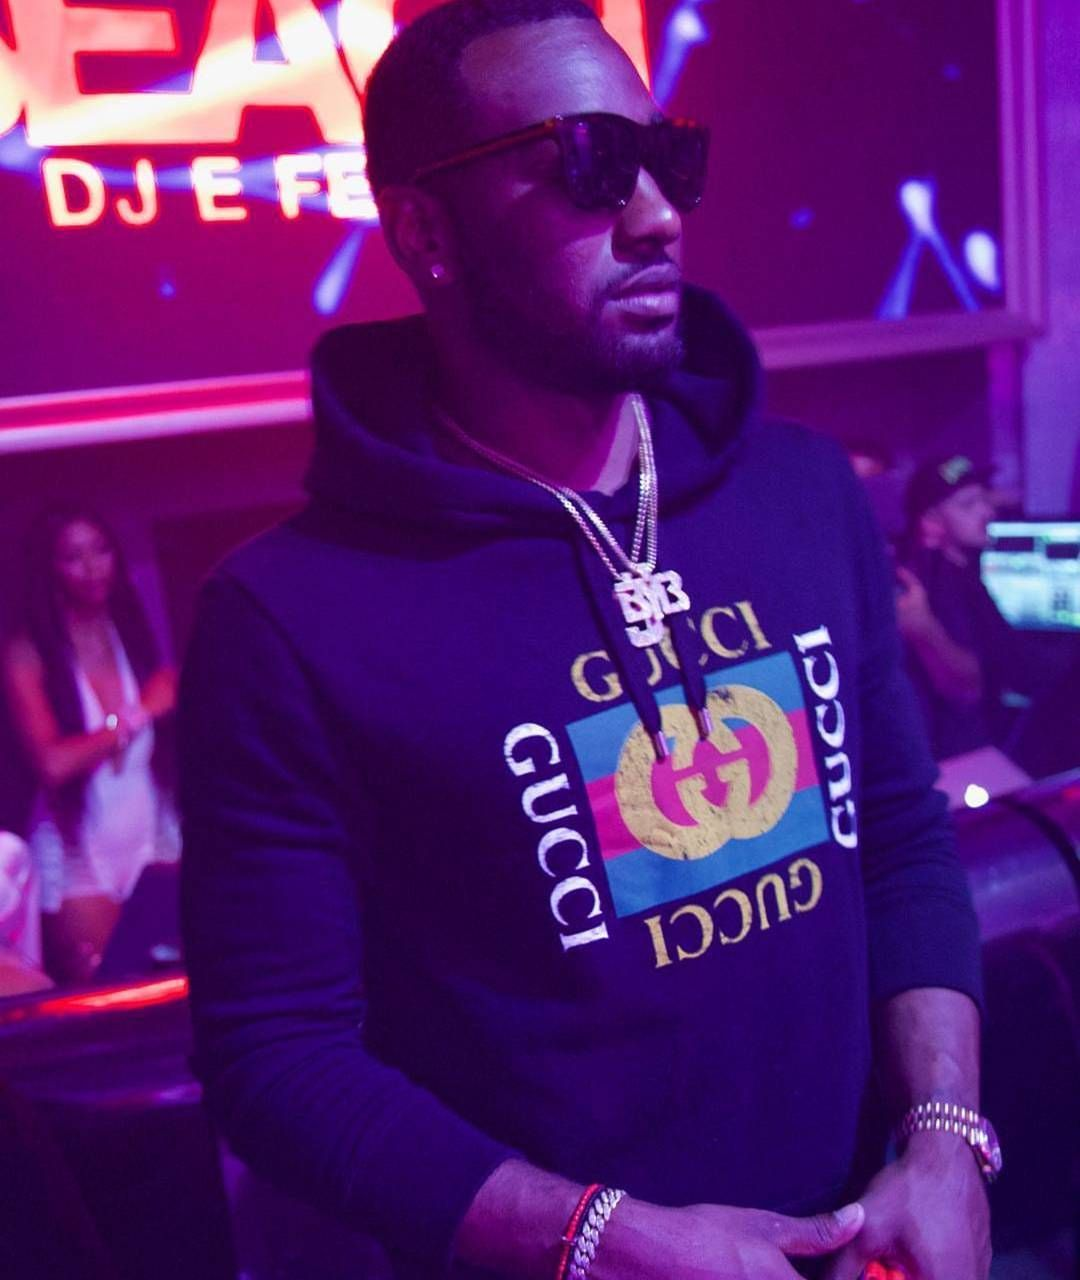 50a4c32c5  NBA star  JohnWall rocking  Gucci sunglasses and  Gucci logo hoodie.   morethanstats